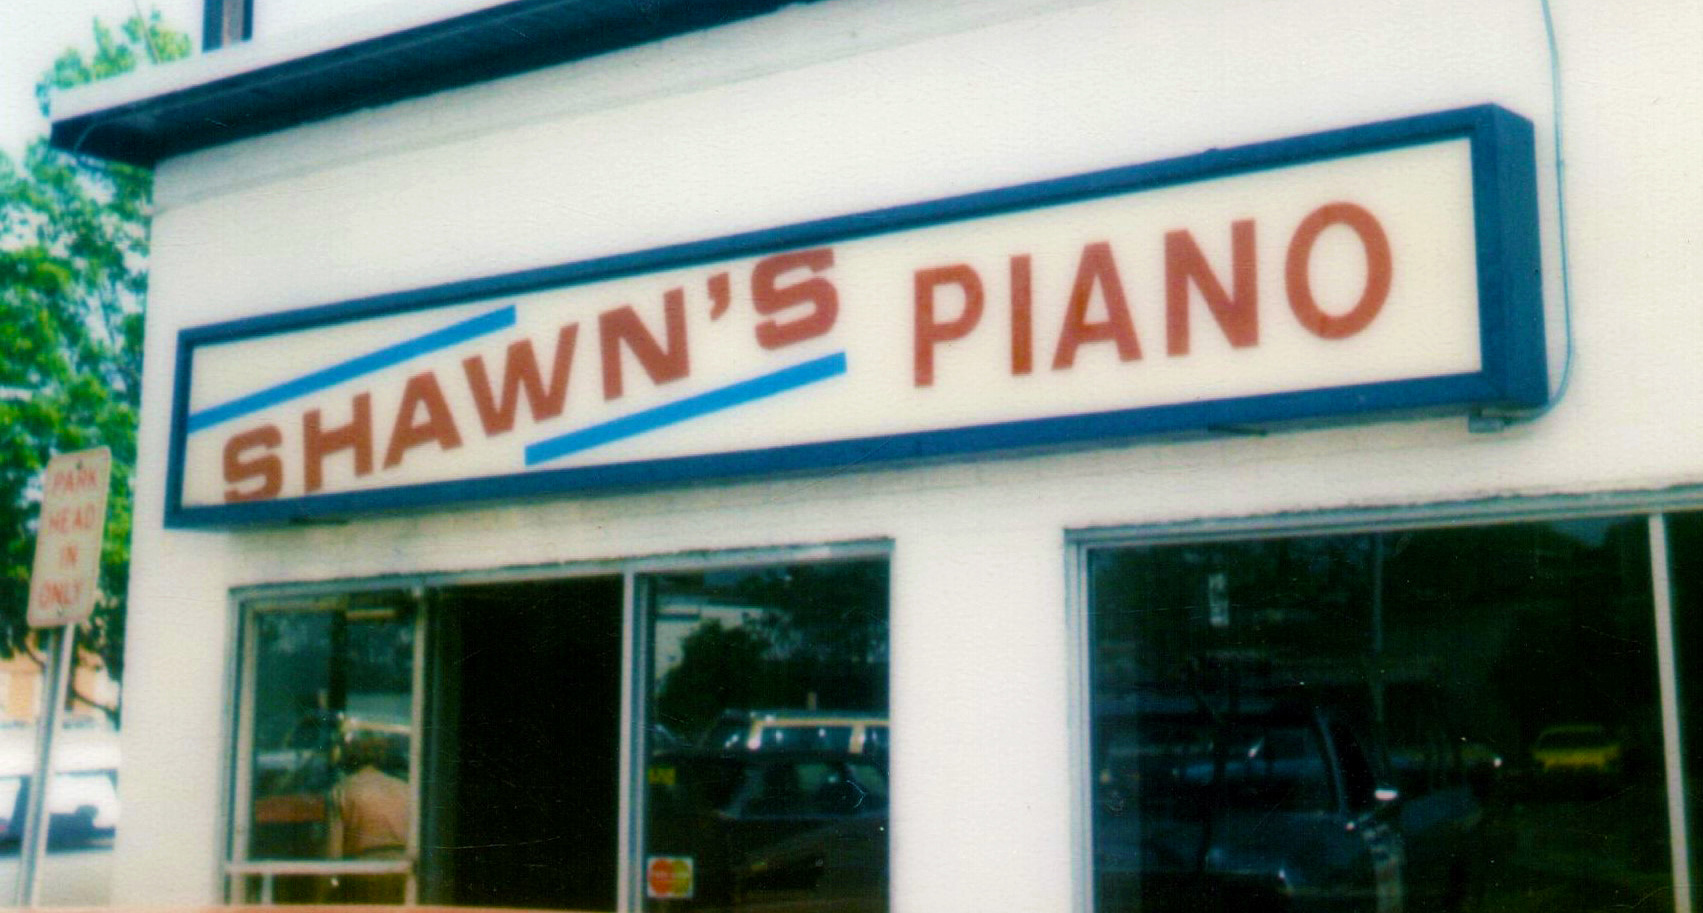 Shawn's Piano Original Location